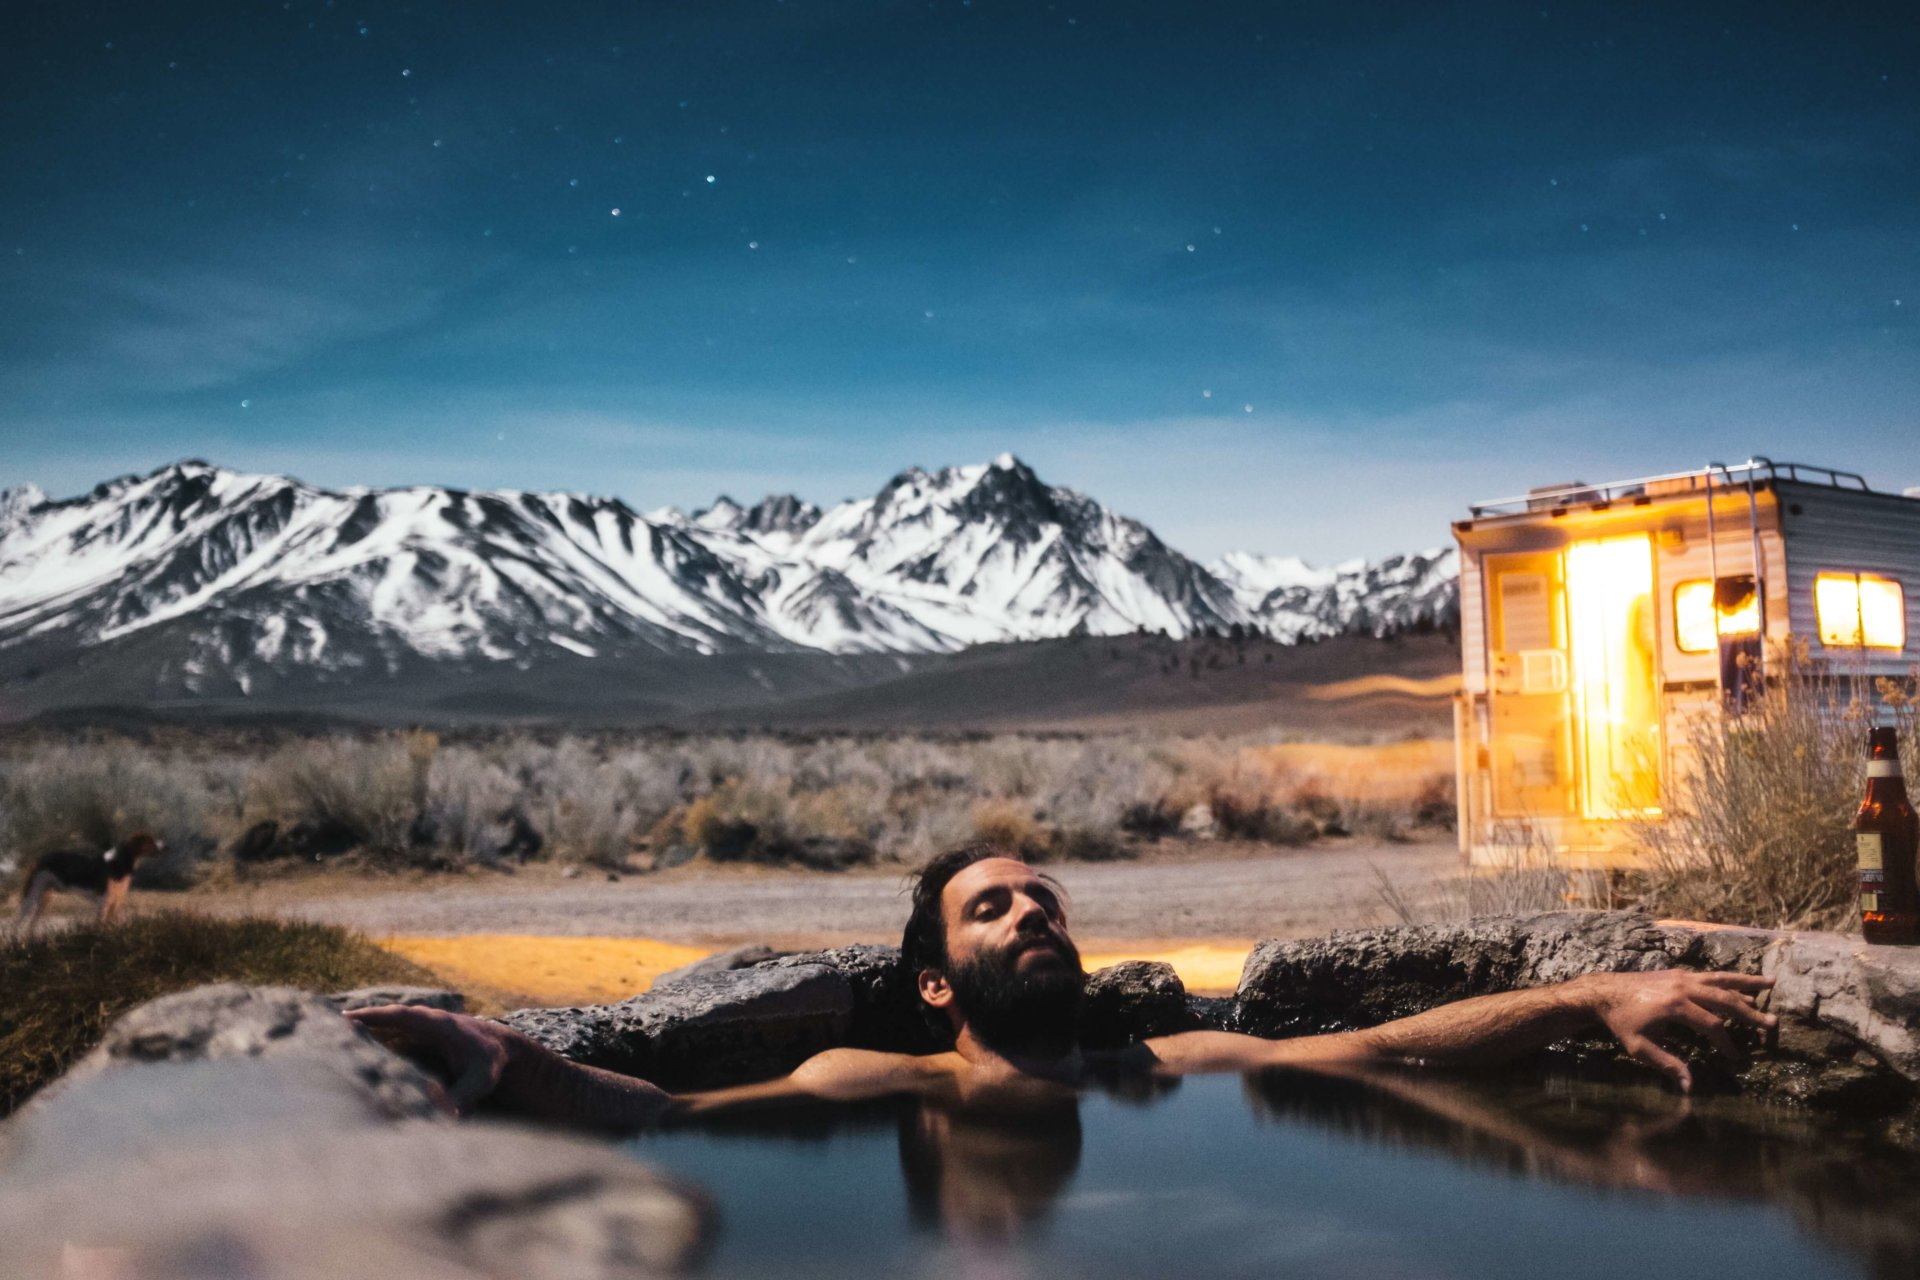 a man sitting in hot tub in wilderness under a starry night sky